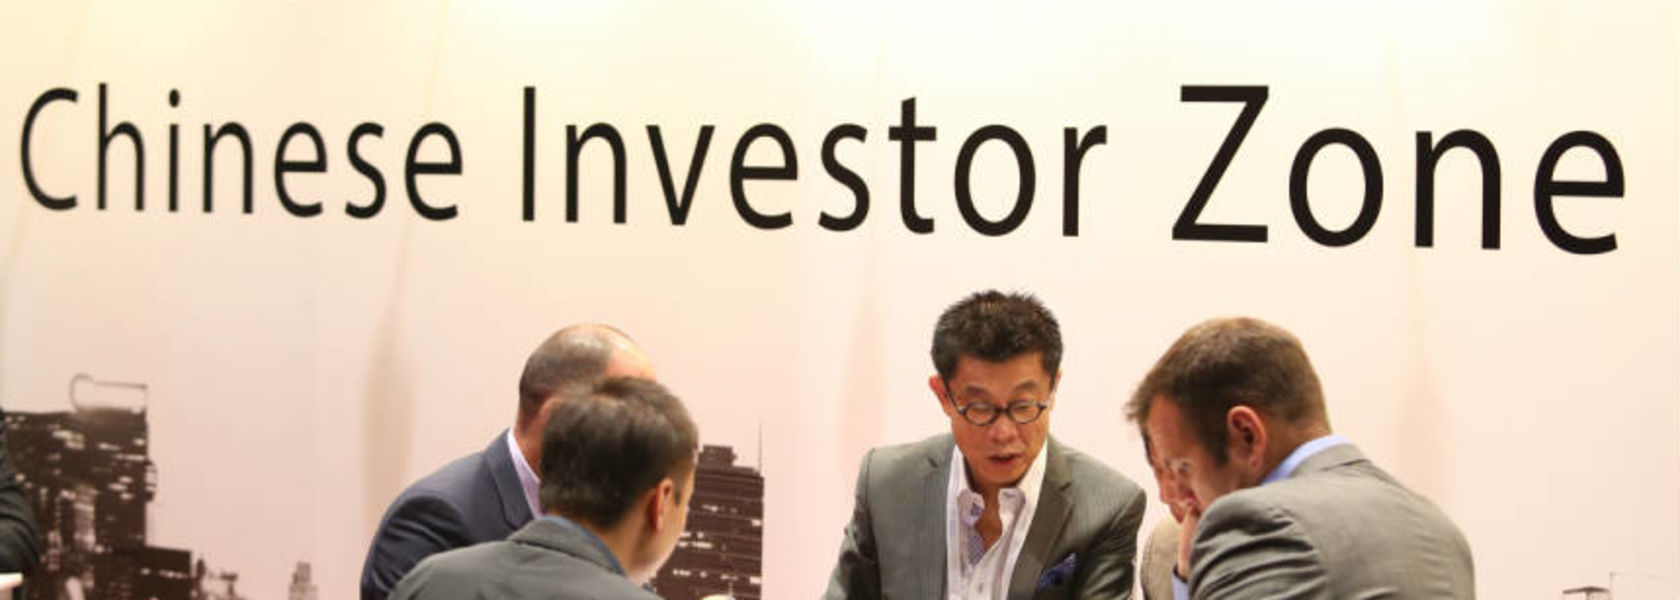 Plenty to discuss at Mines and Money Asia